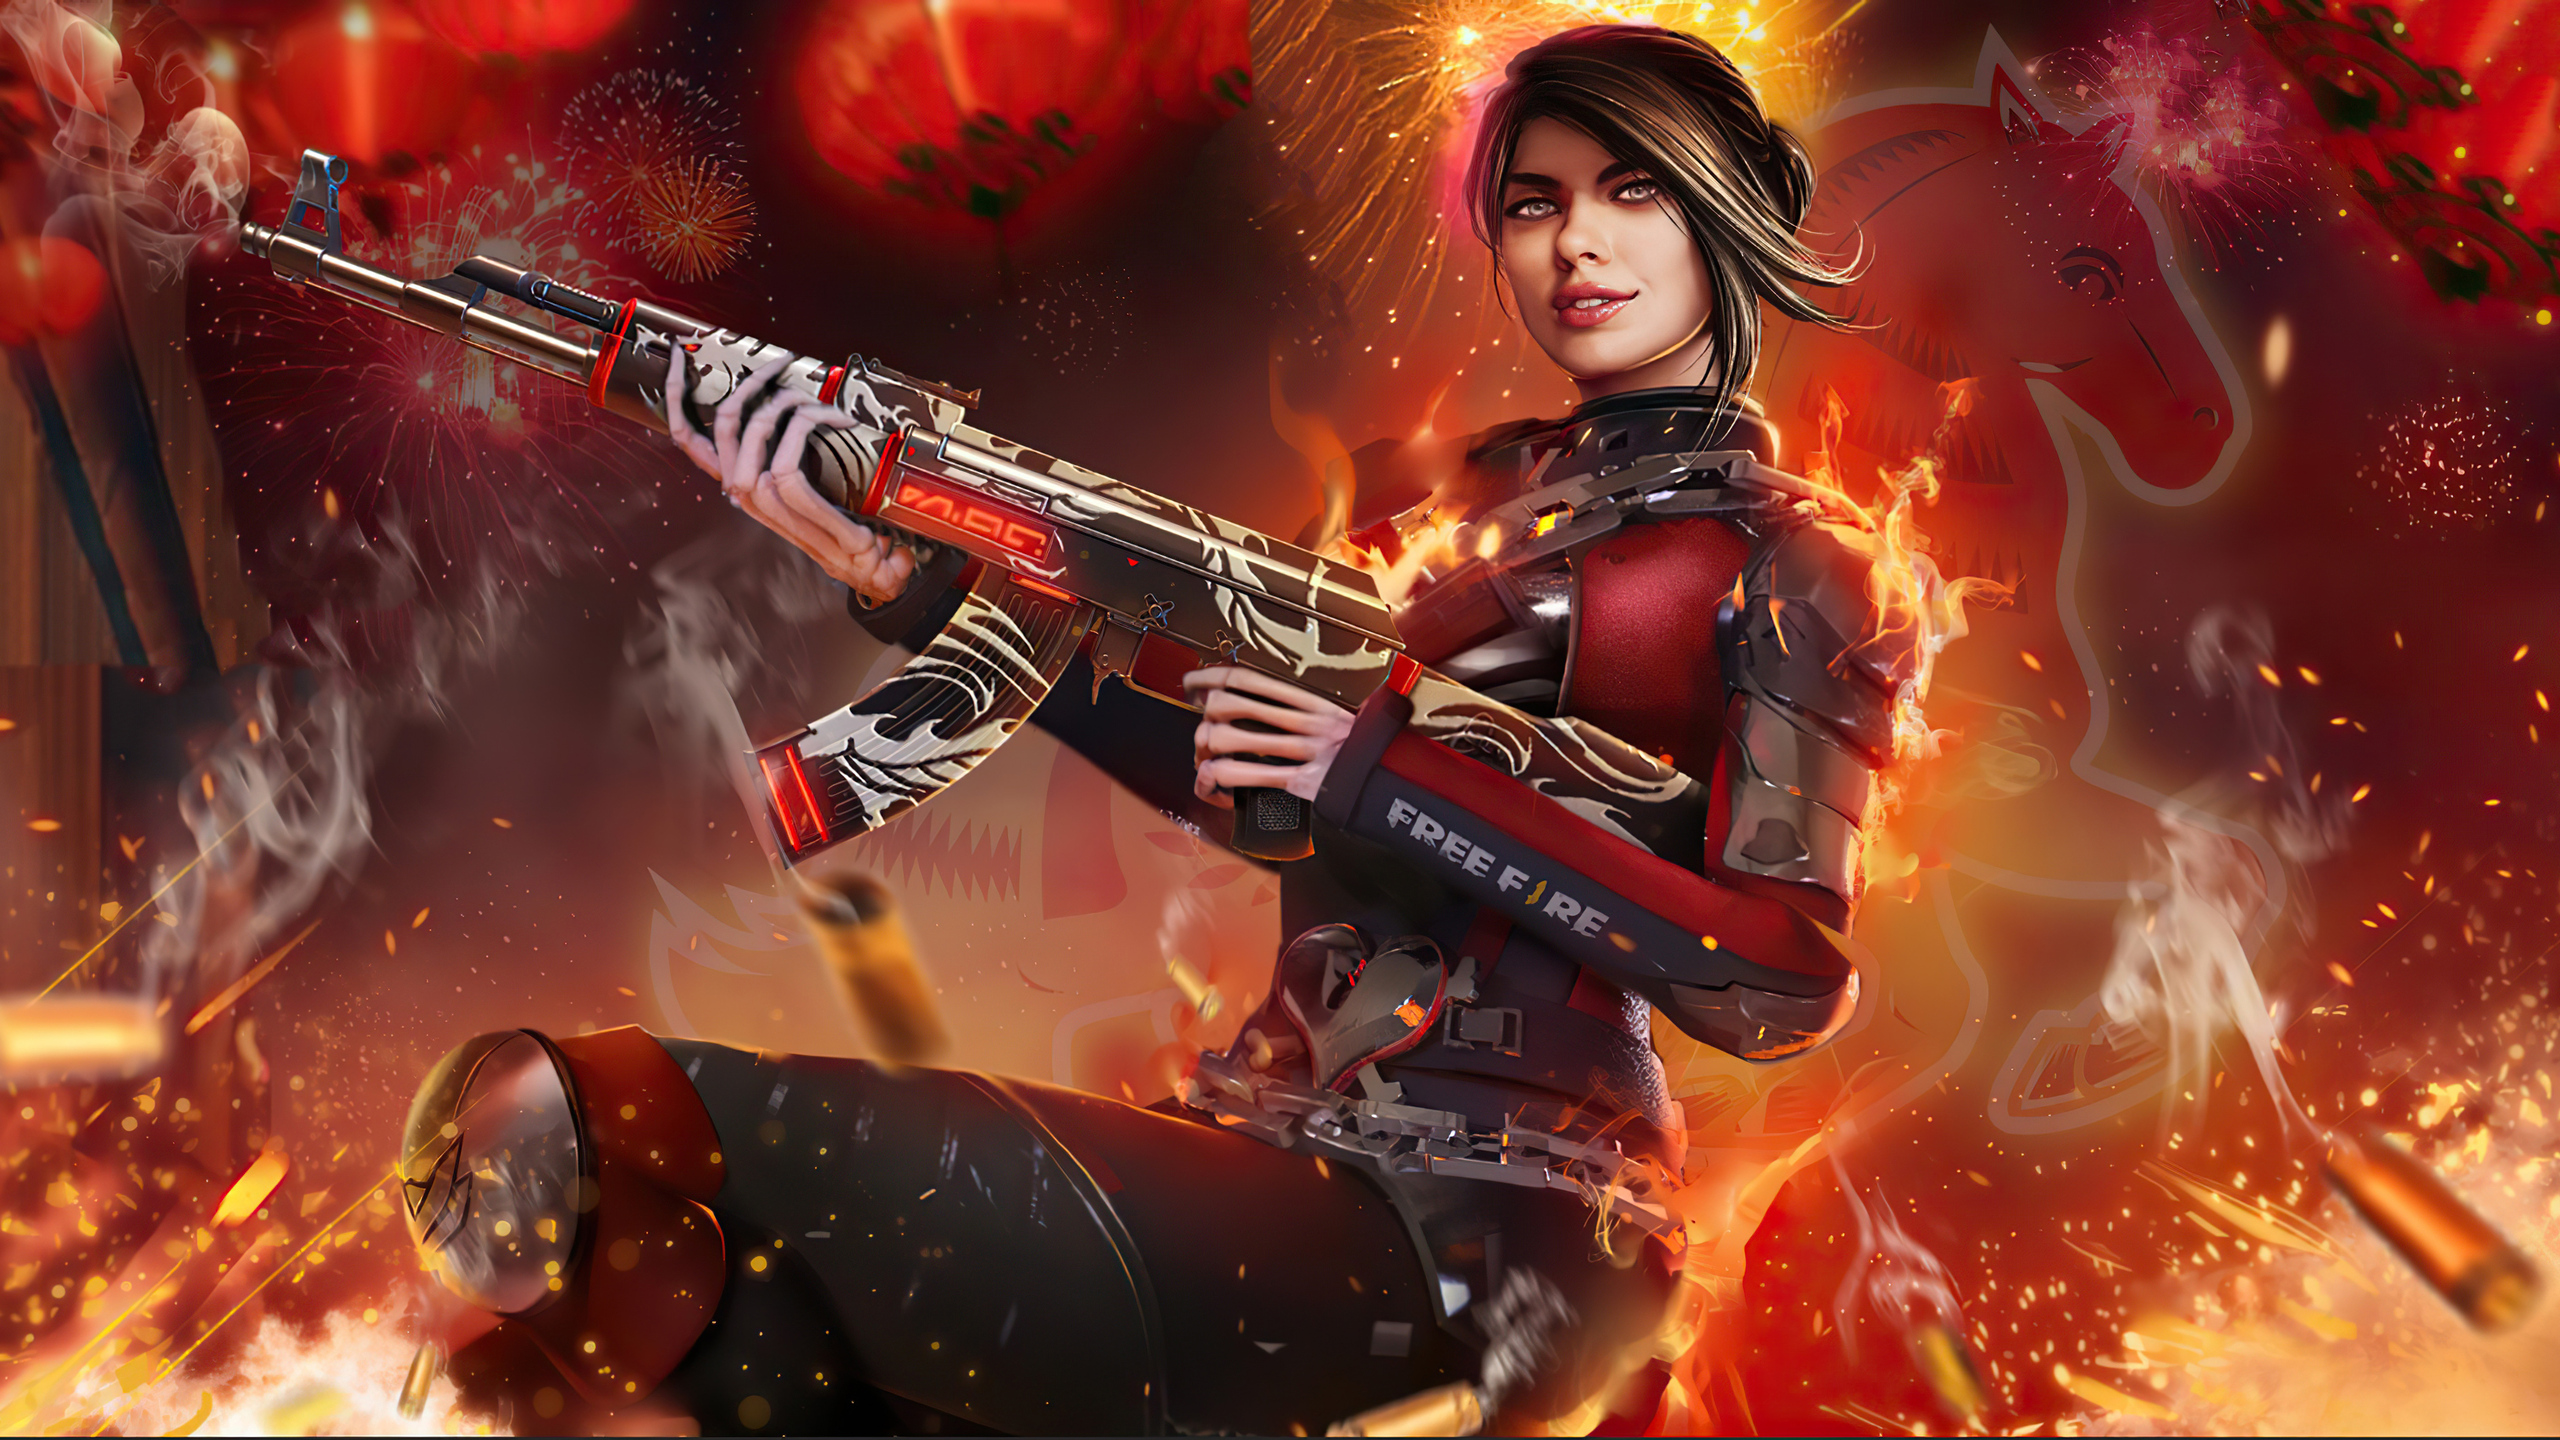 2560x1440 Garena Free Fire 4k Game 2020 1440p Resolution Hd 4k Wallpapers Images Backgrounds Photos And Pictures